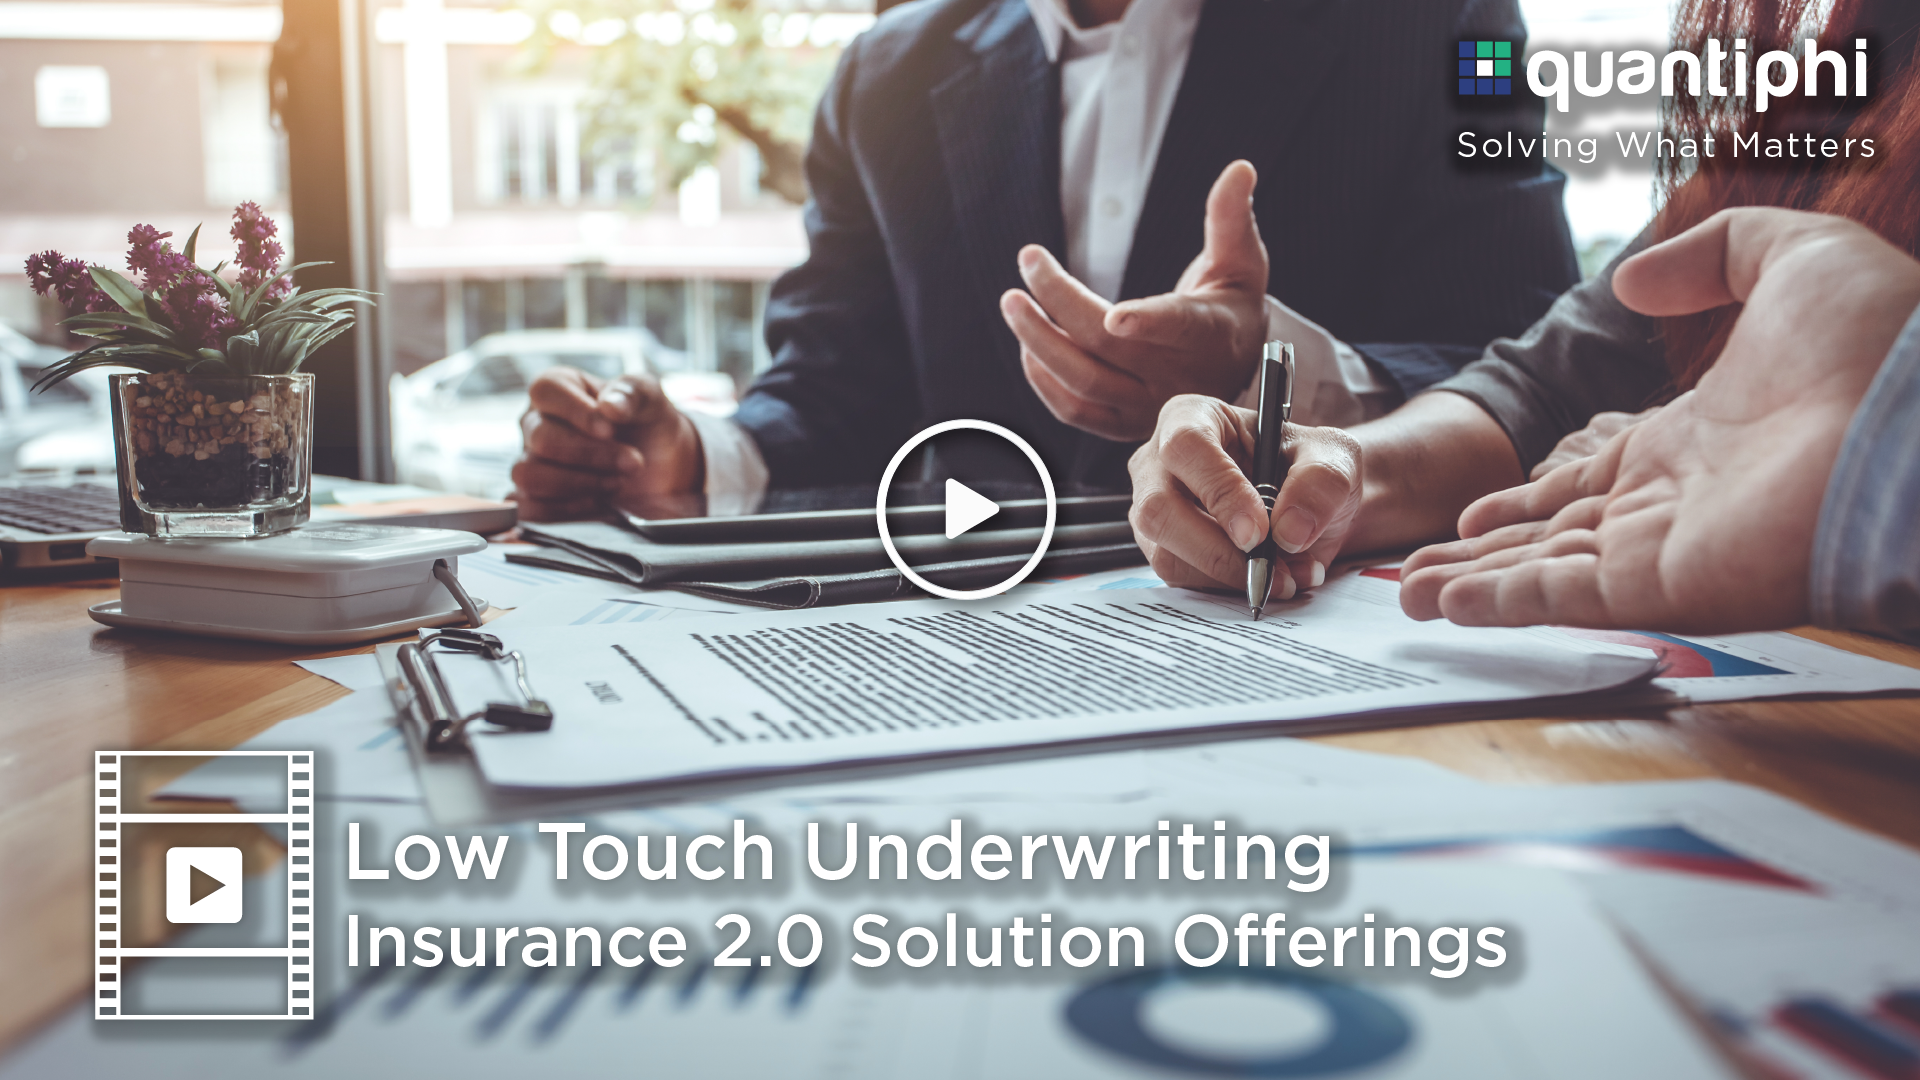 Insurance 2.0: Low Touch Underwriting